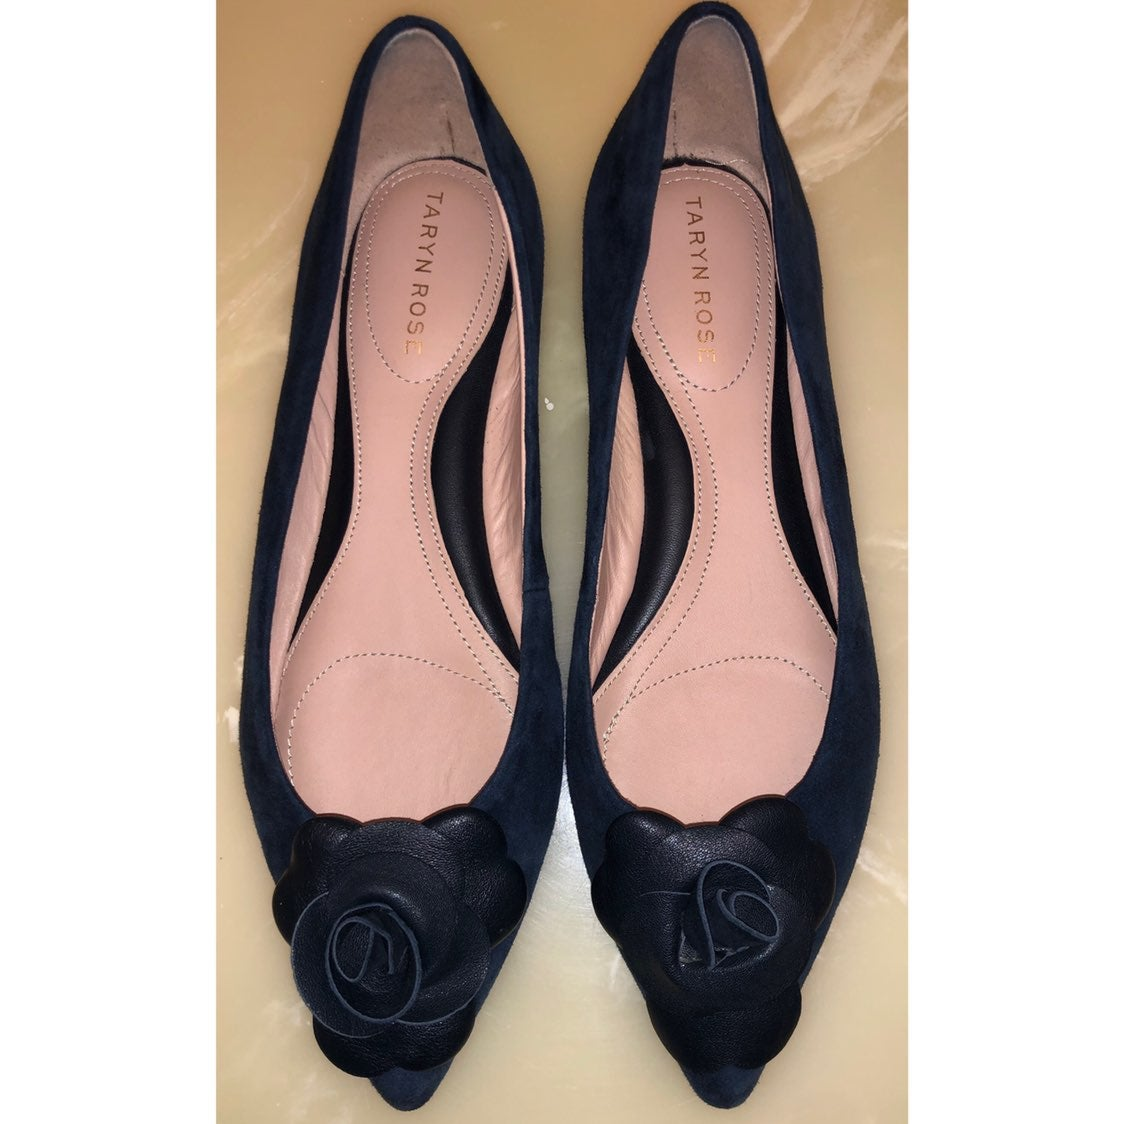 Taryn Rose Frida Pointed Toe Flat 7B